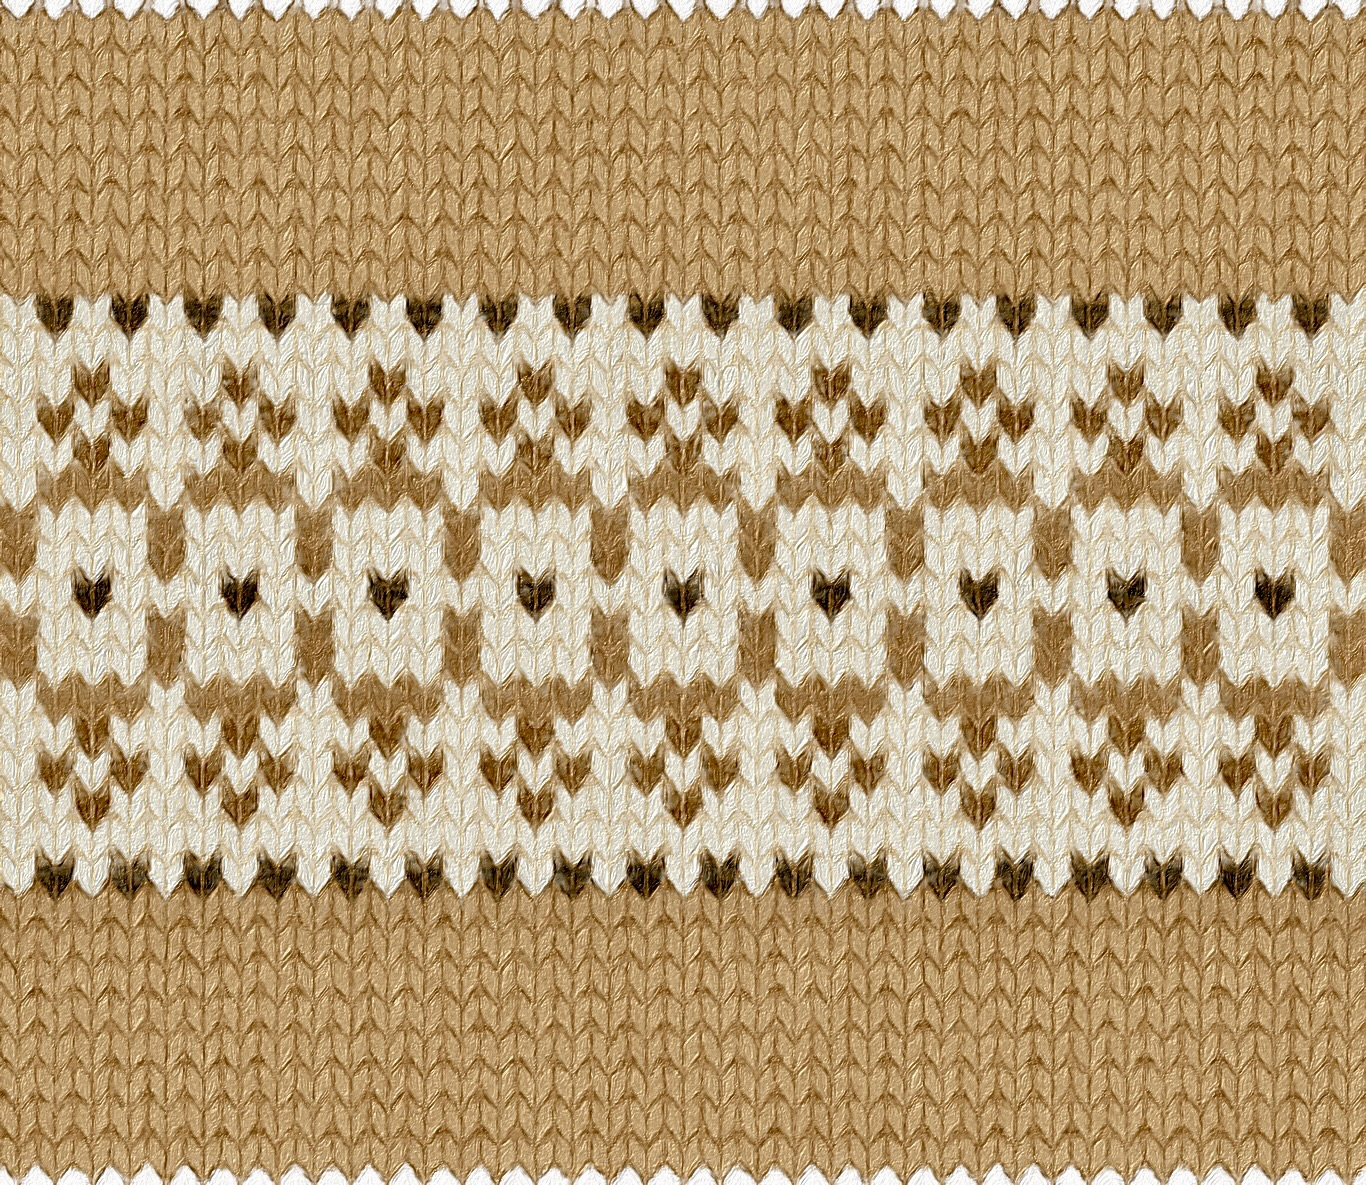 depiction of Sheep needlework chart as a stranded knitting border